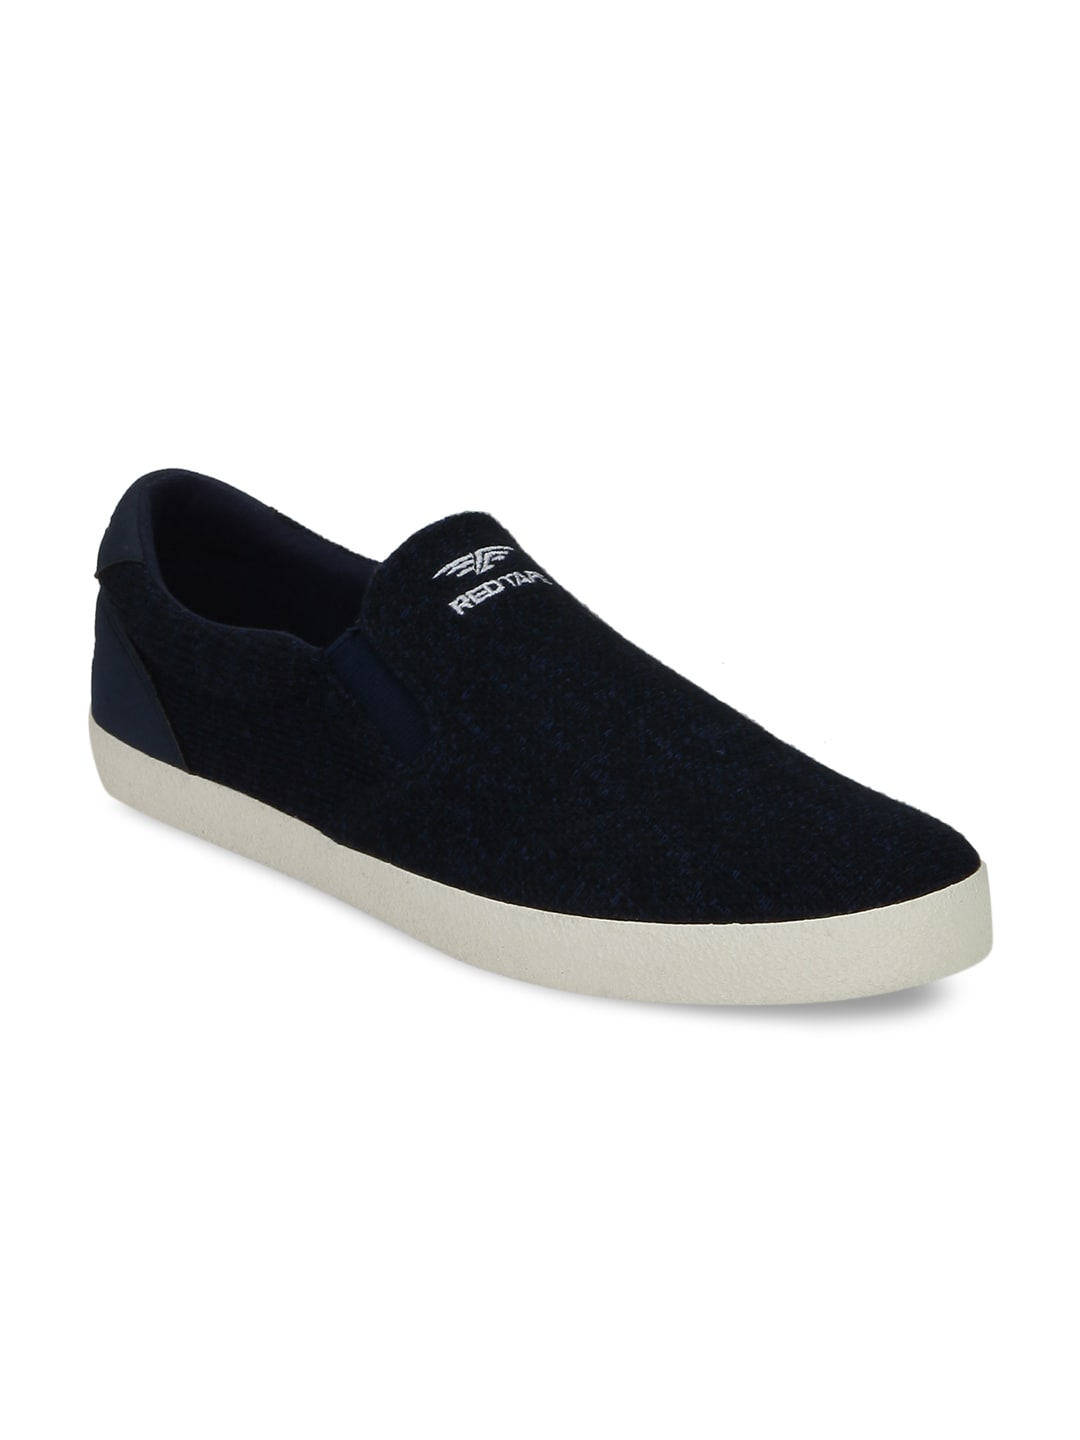 Red Tape Men Navy Slip-On Sneakers image